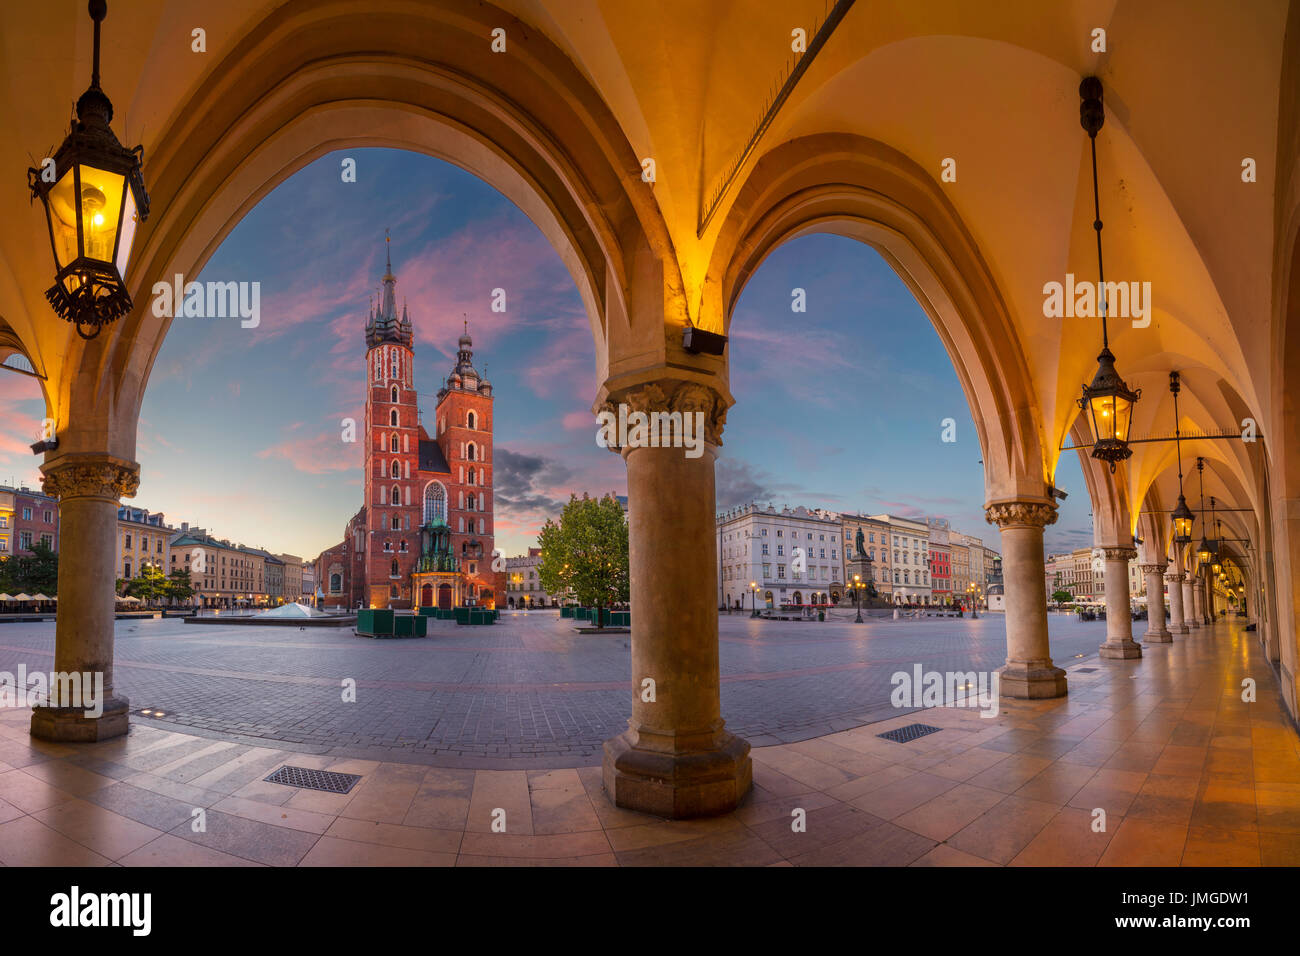 Krakow. Image of Krakow Market square, Poland during sunrise. - Stock Image